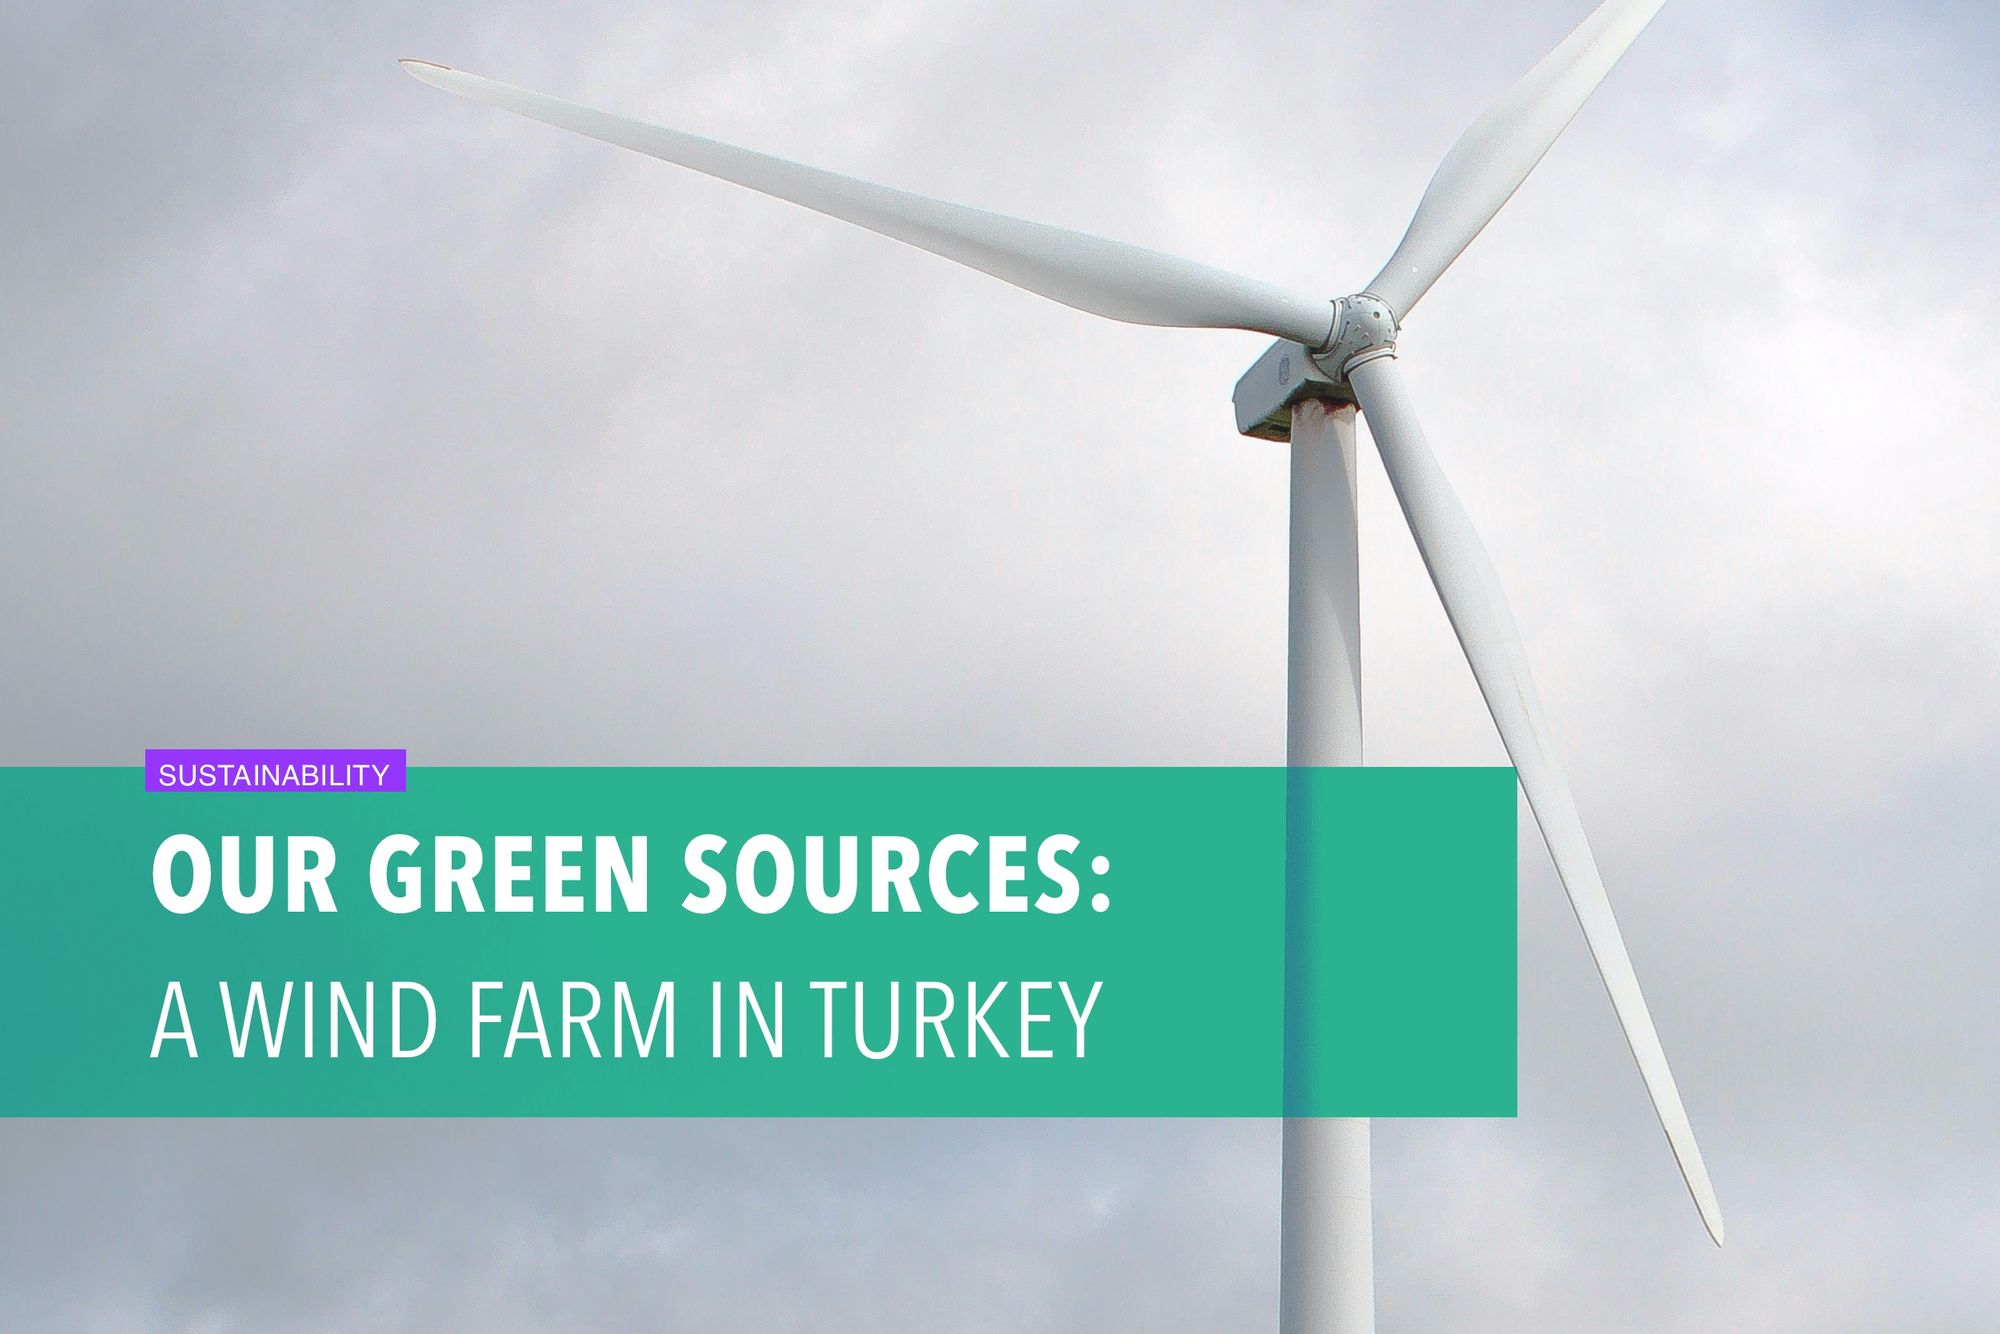 Our green sources: A wind farm in Turkey